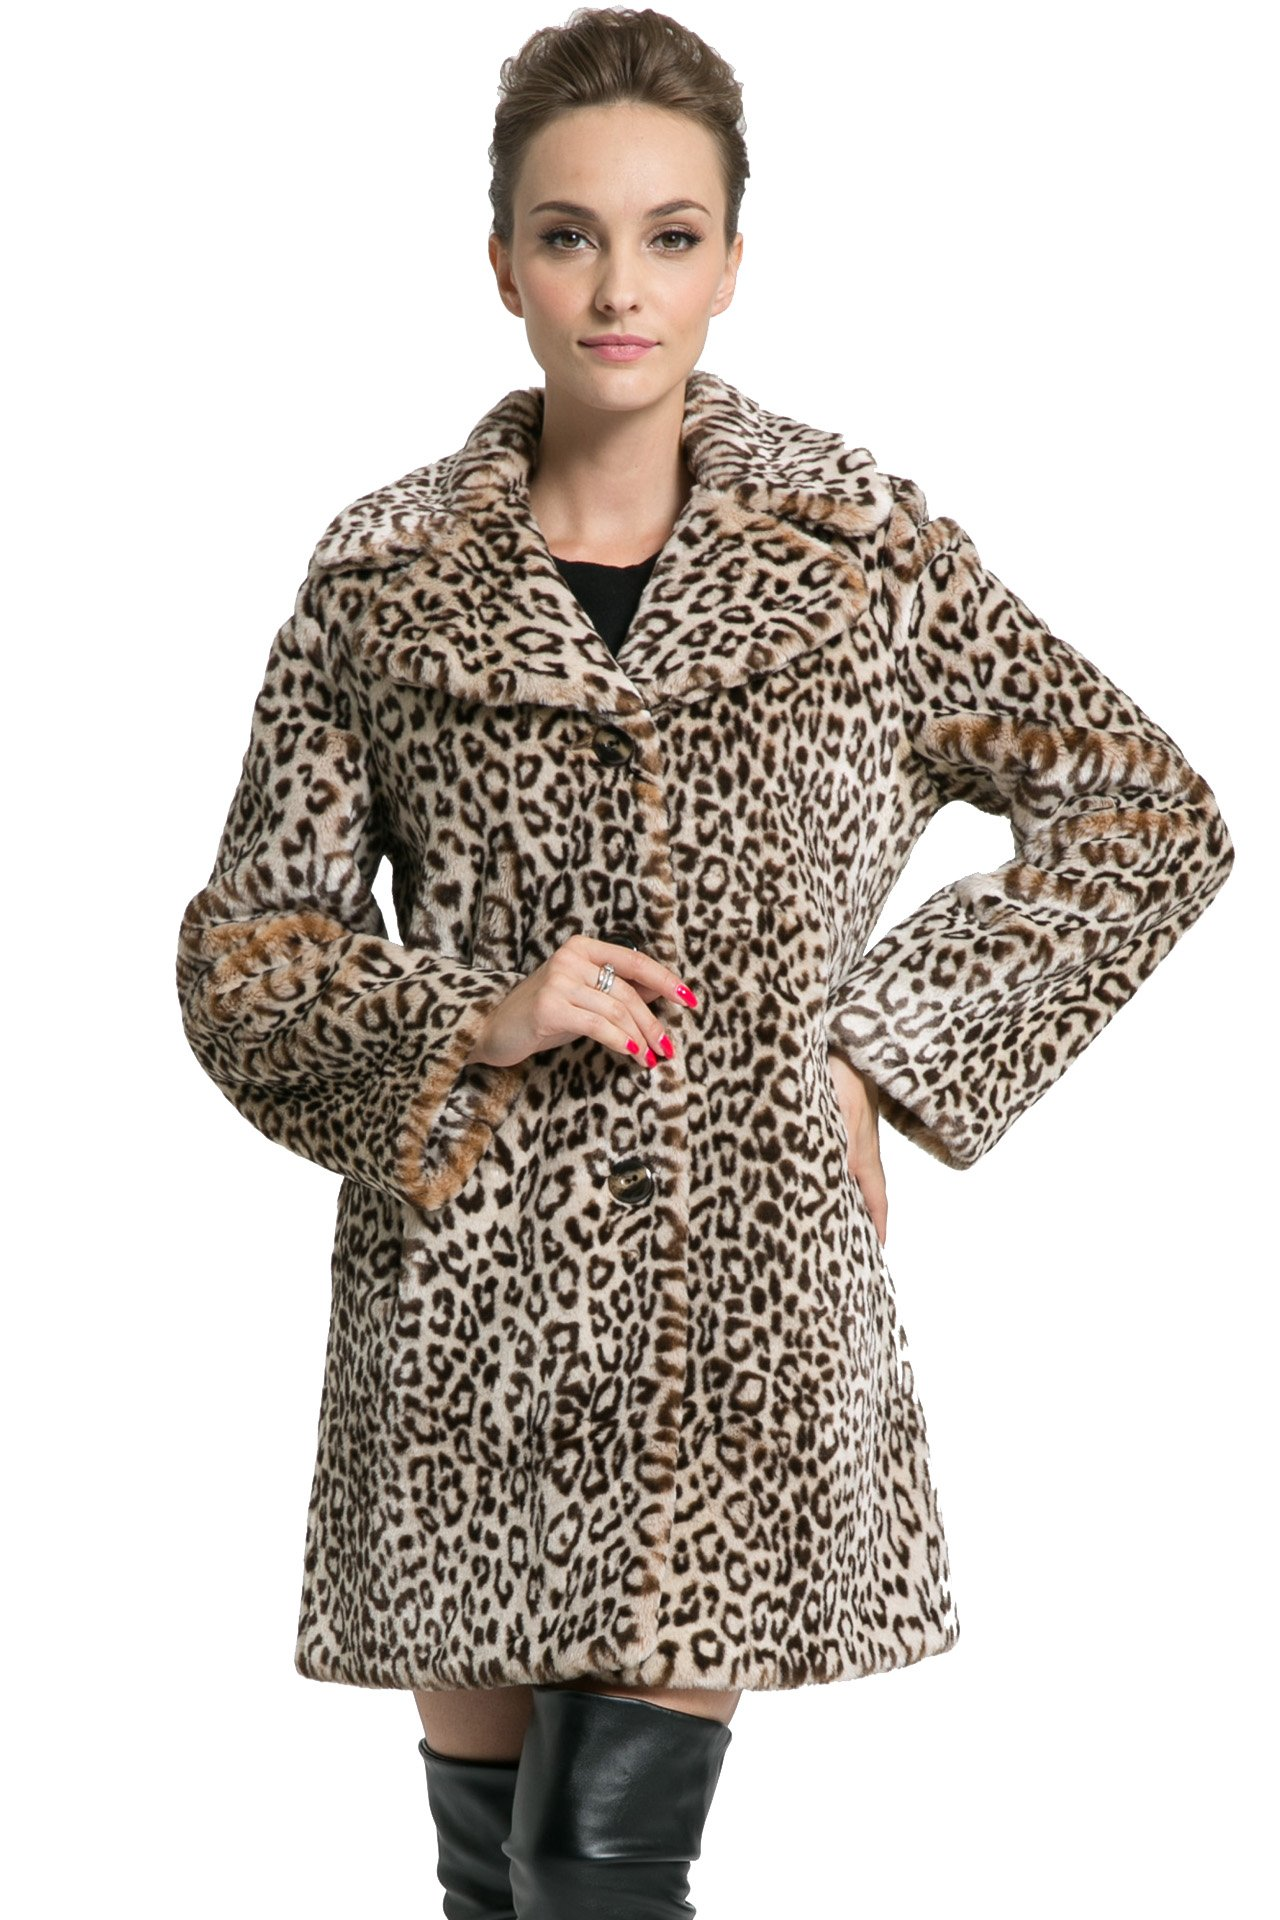 Ovonzo Women's New Style Middle Length Leopard Faux Fur Coat Brown Size XL by OVONZO